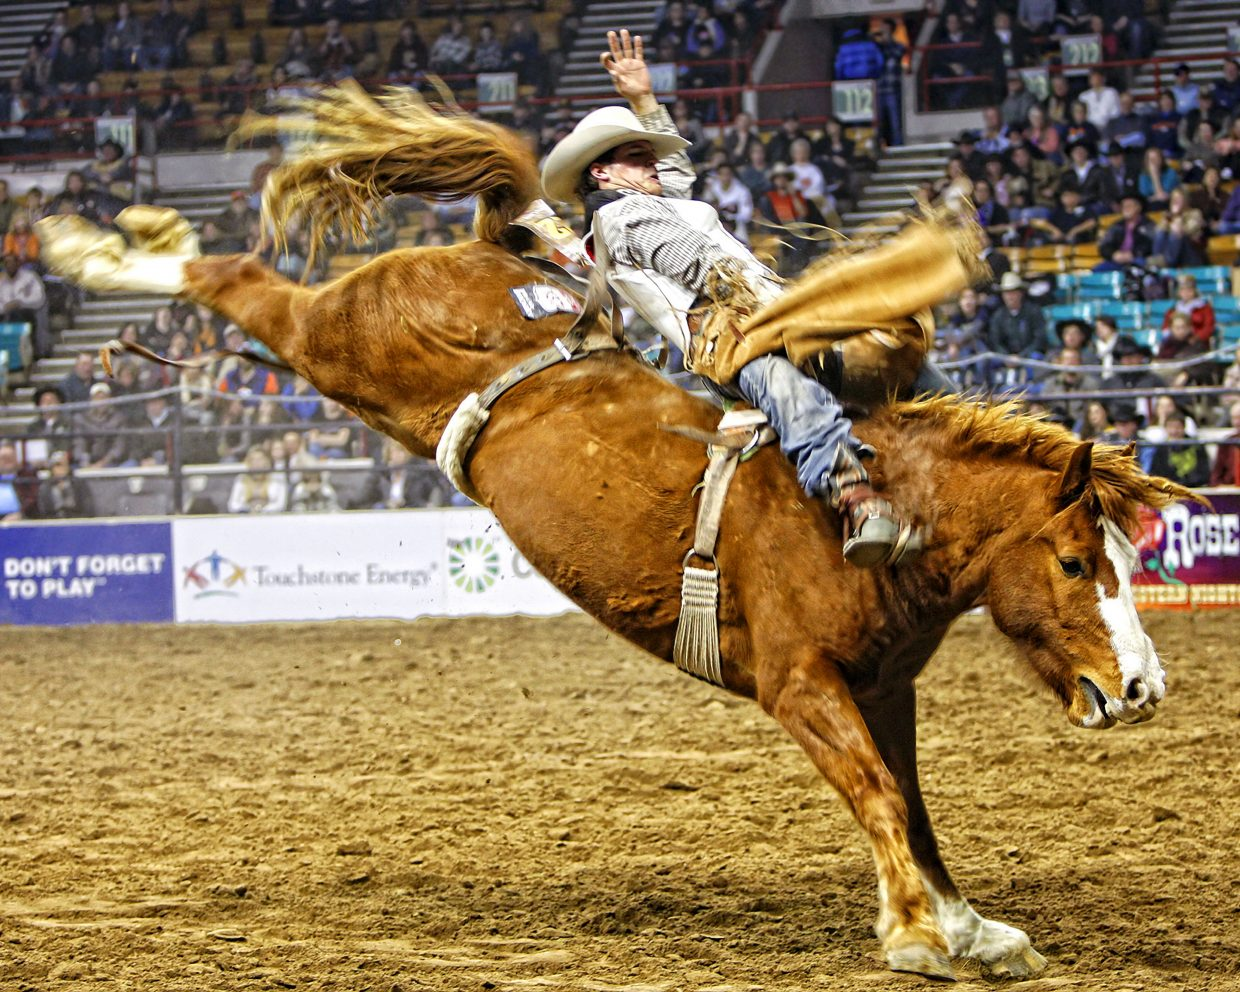 Richie Champion scored 87 points on Cervi's Hell's Fire Hostage during the final head-to-head round to win the bareback riding event at the 2nd annual Colorado Vs. The World rodeo at Denver's 2013 National Western Stock Show (January 12, 2013). It was Champion's first big money check in his career.